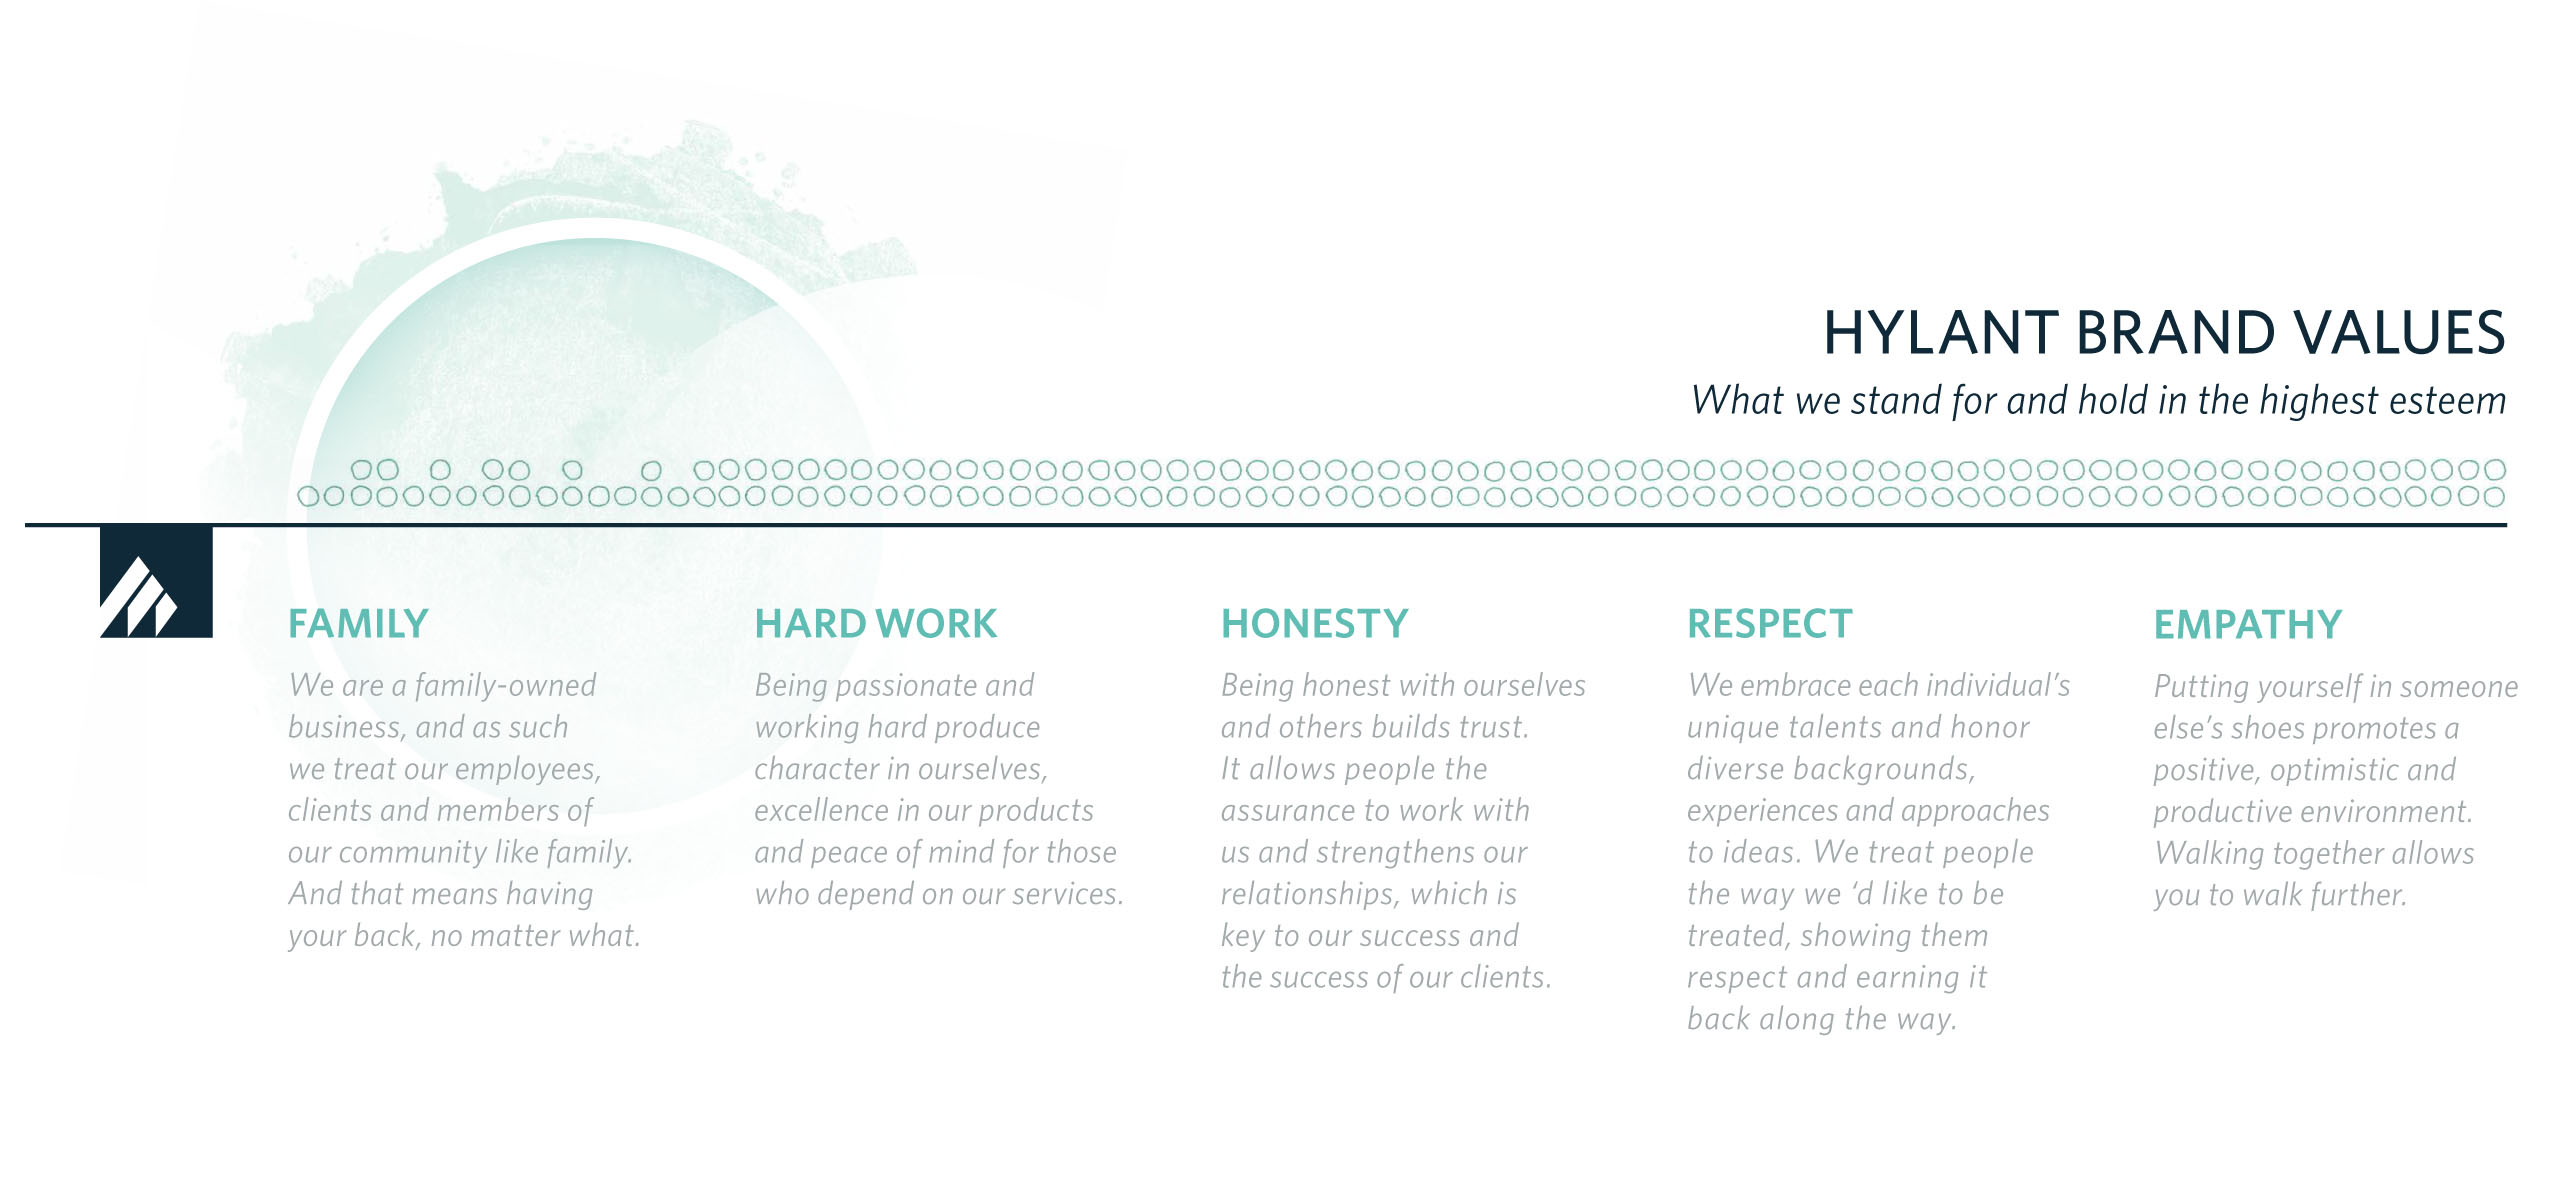 Hylant Brand Values: Family, Hard Work, Honesty, Respect and Empathy